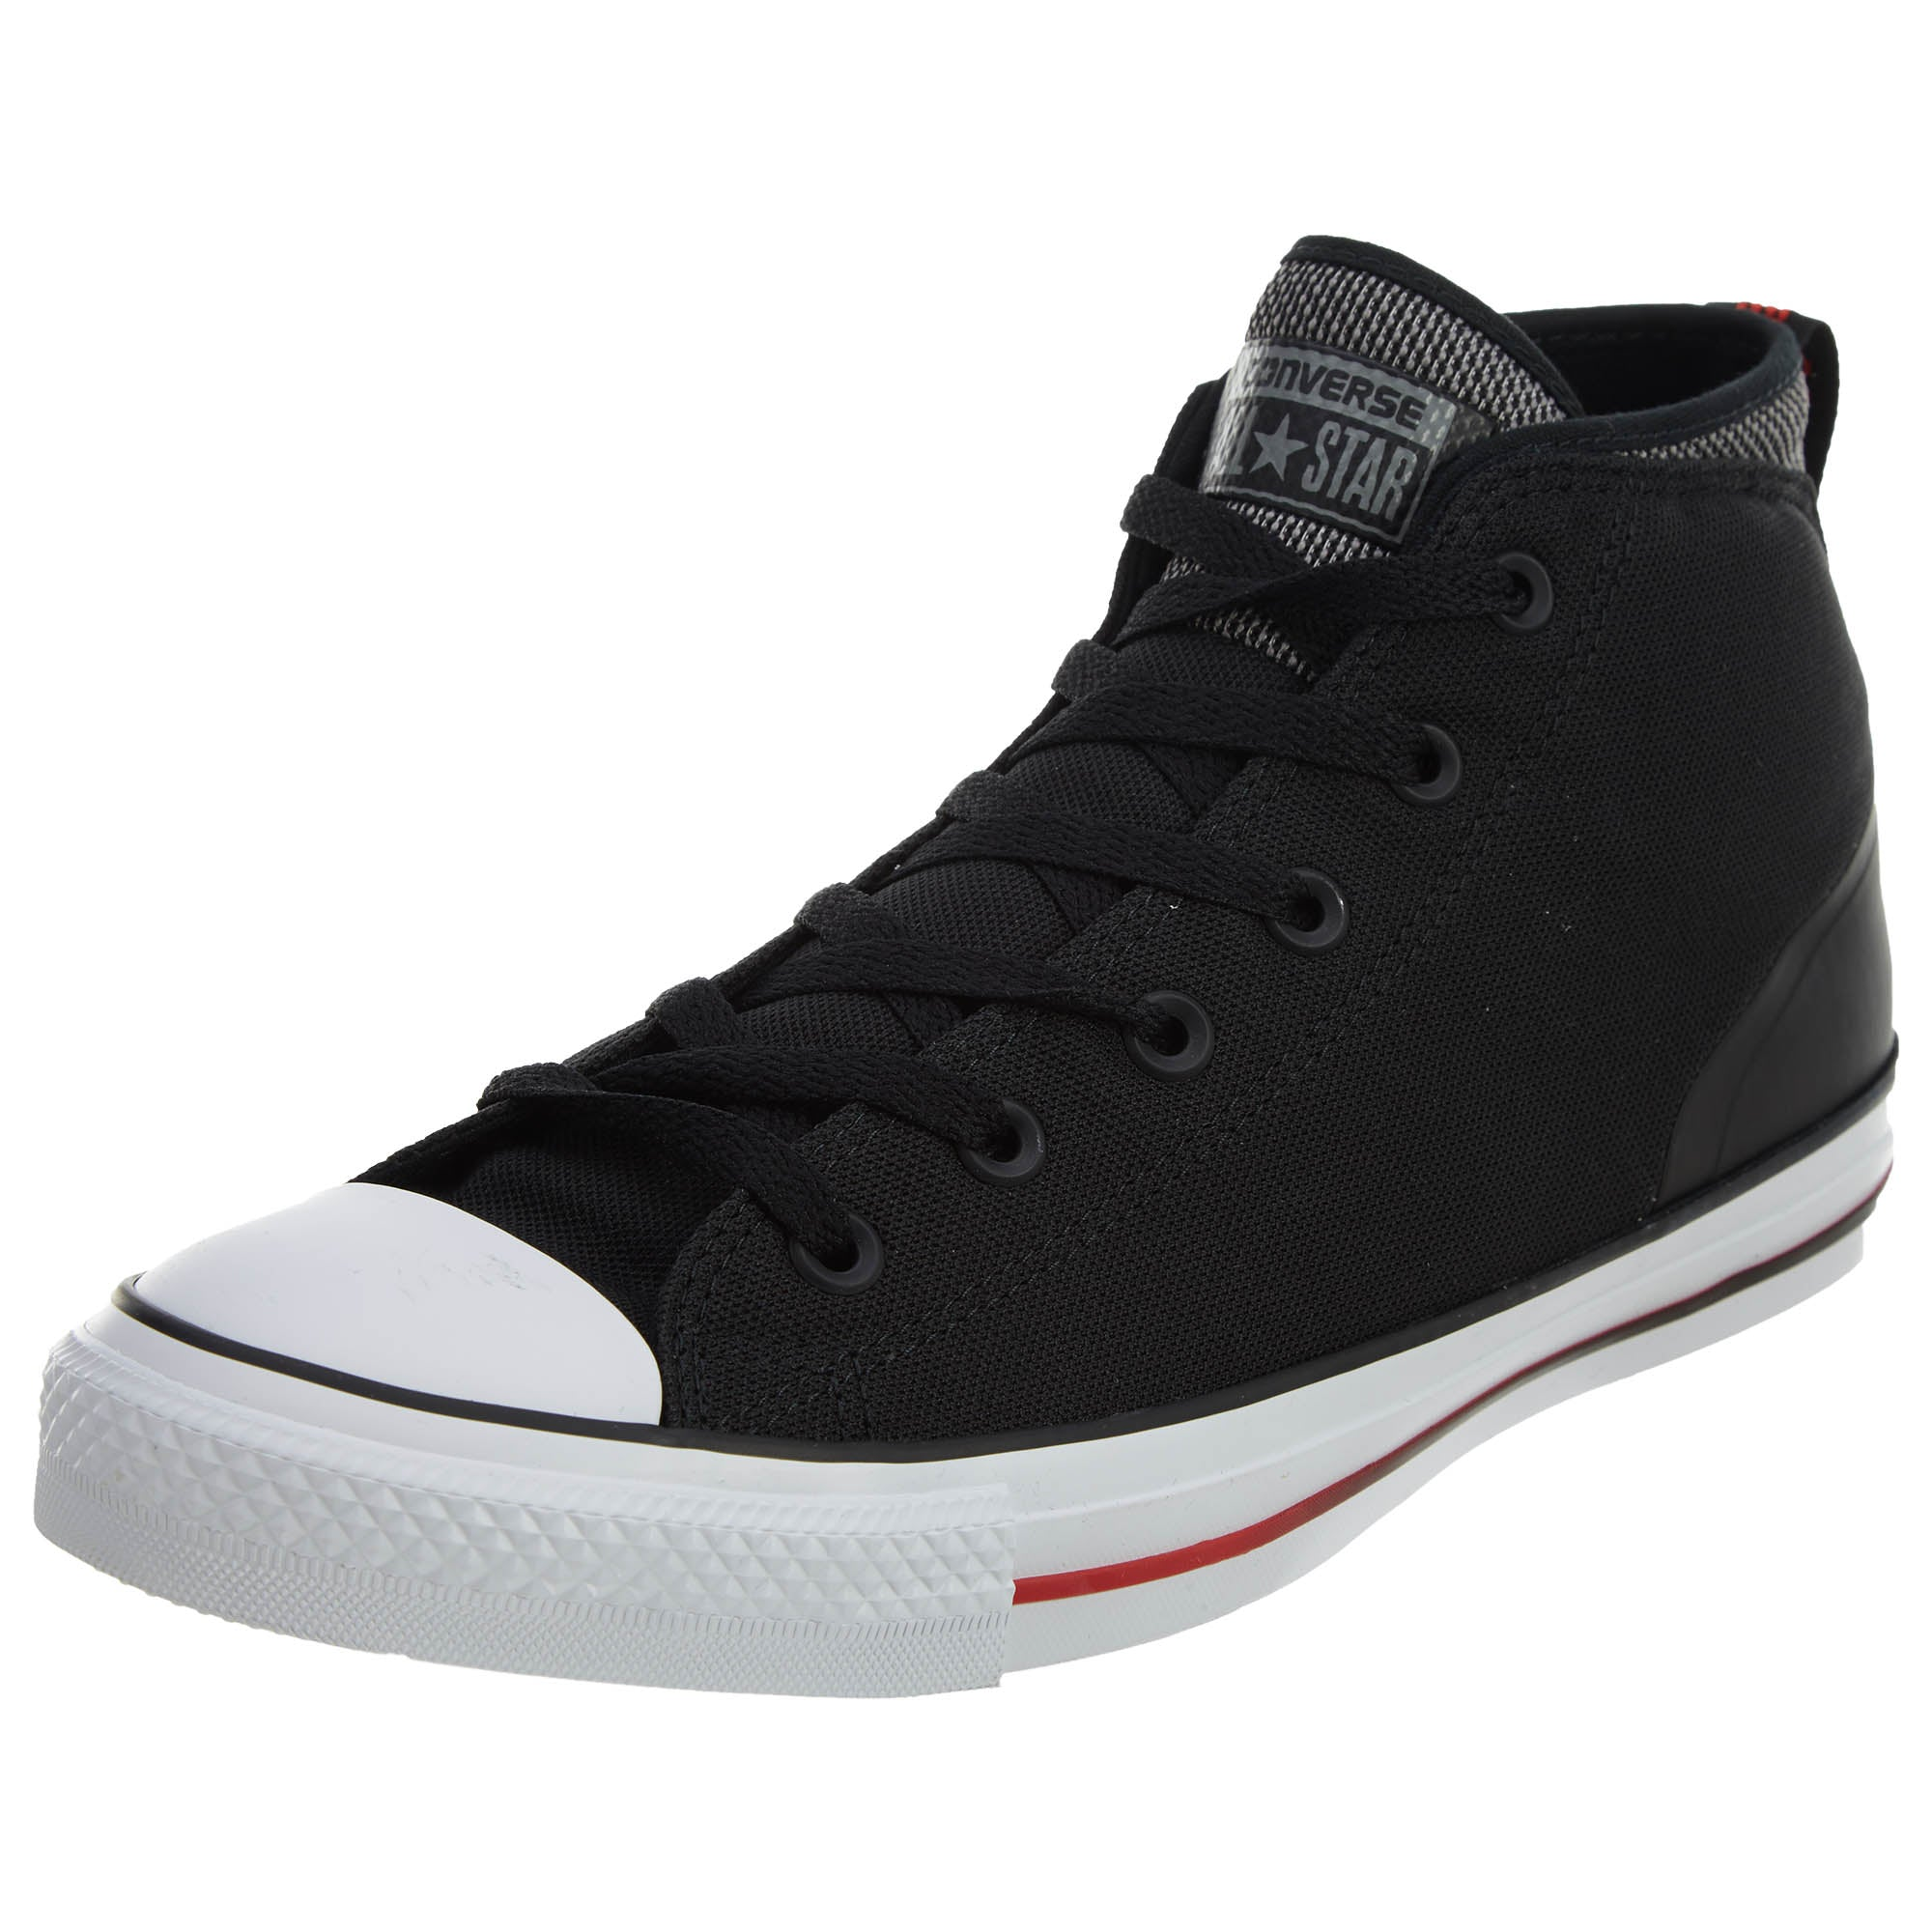 50e4e16ae16 Converse Chuck Taylor All Star Syde Street Mid Unisex 155479C – Sneaker  Experts